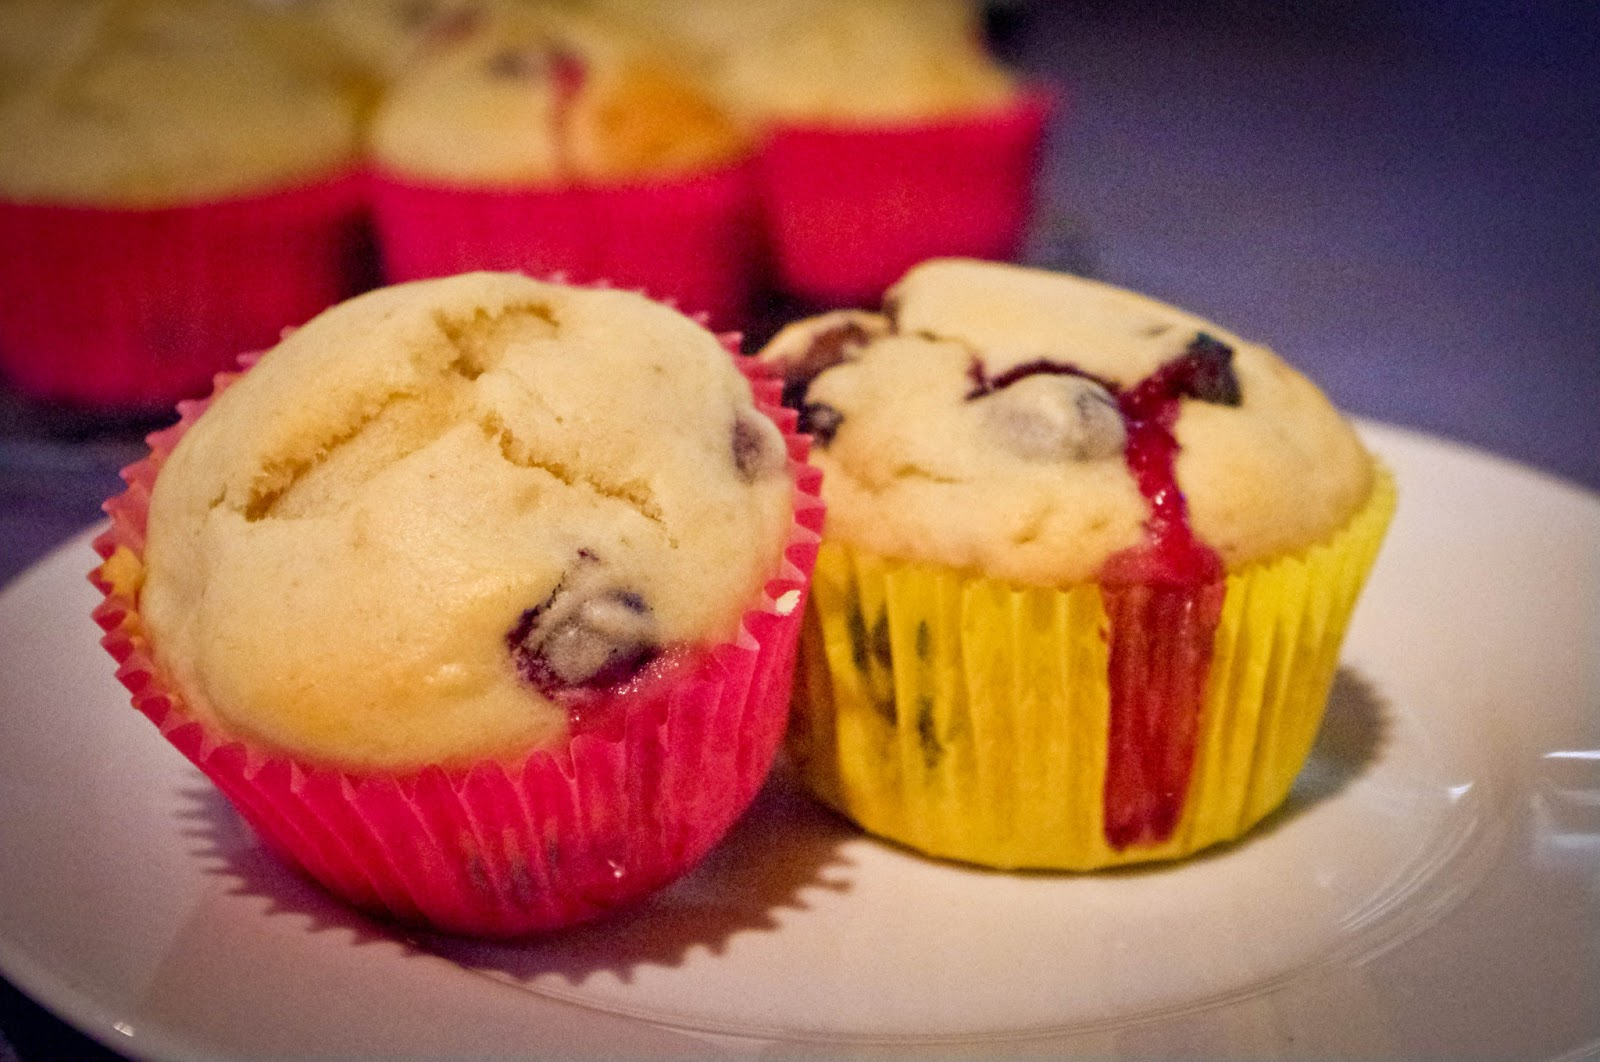 Paleomix Weight Watchers Banana And Blueberry Muffins 3 Propoints